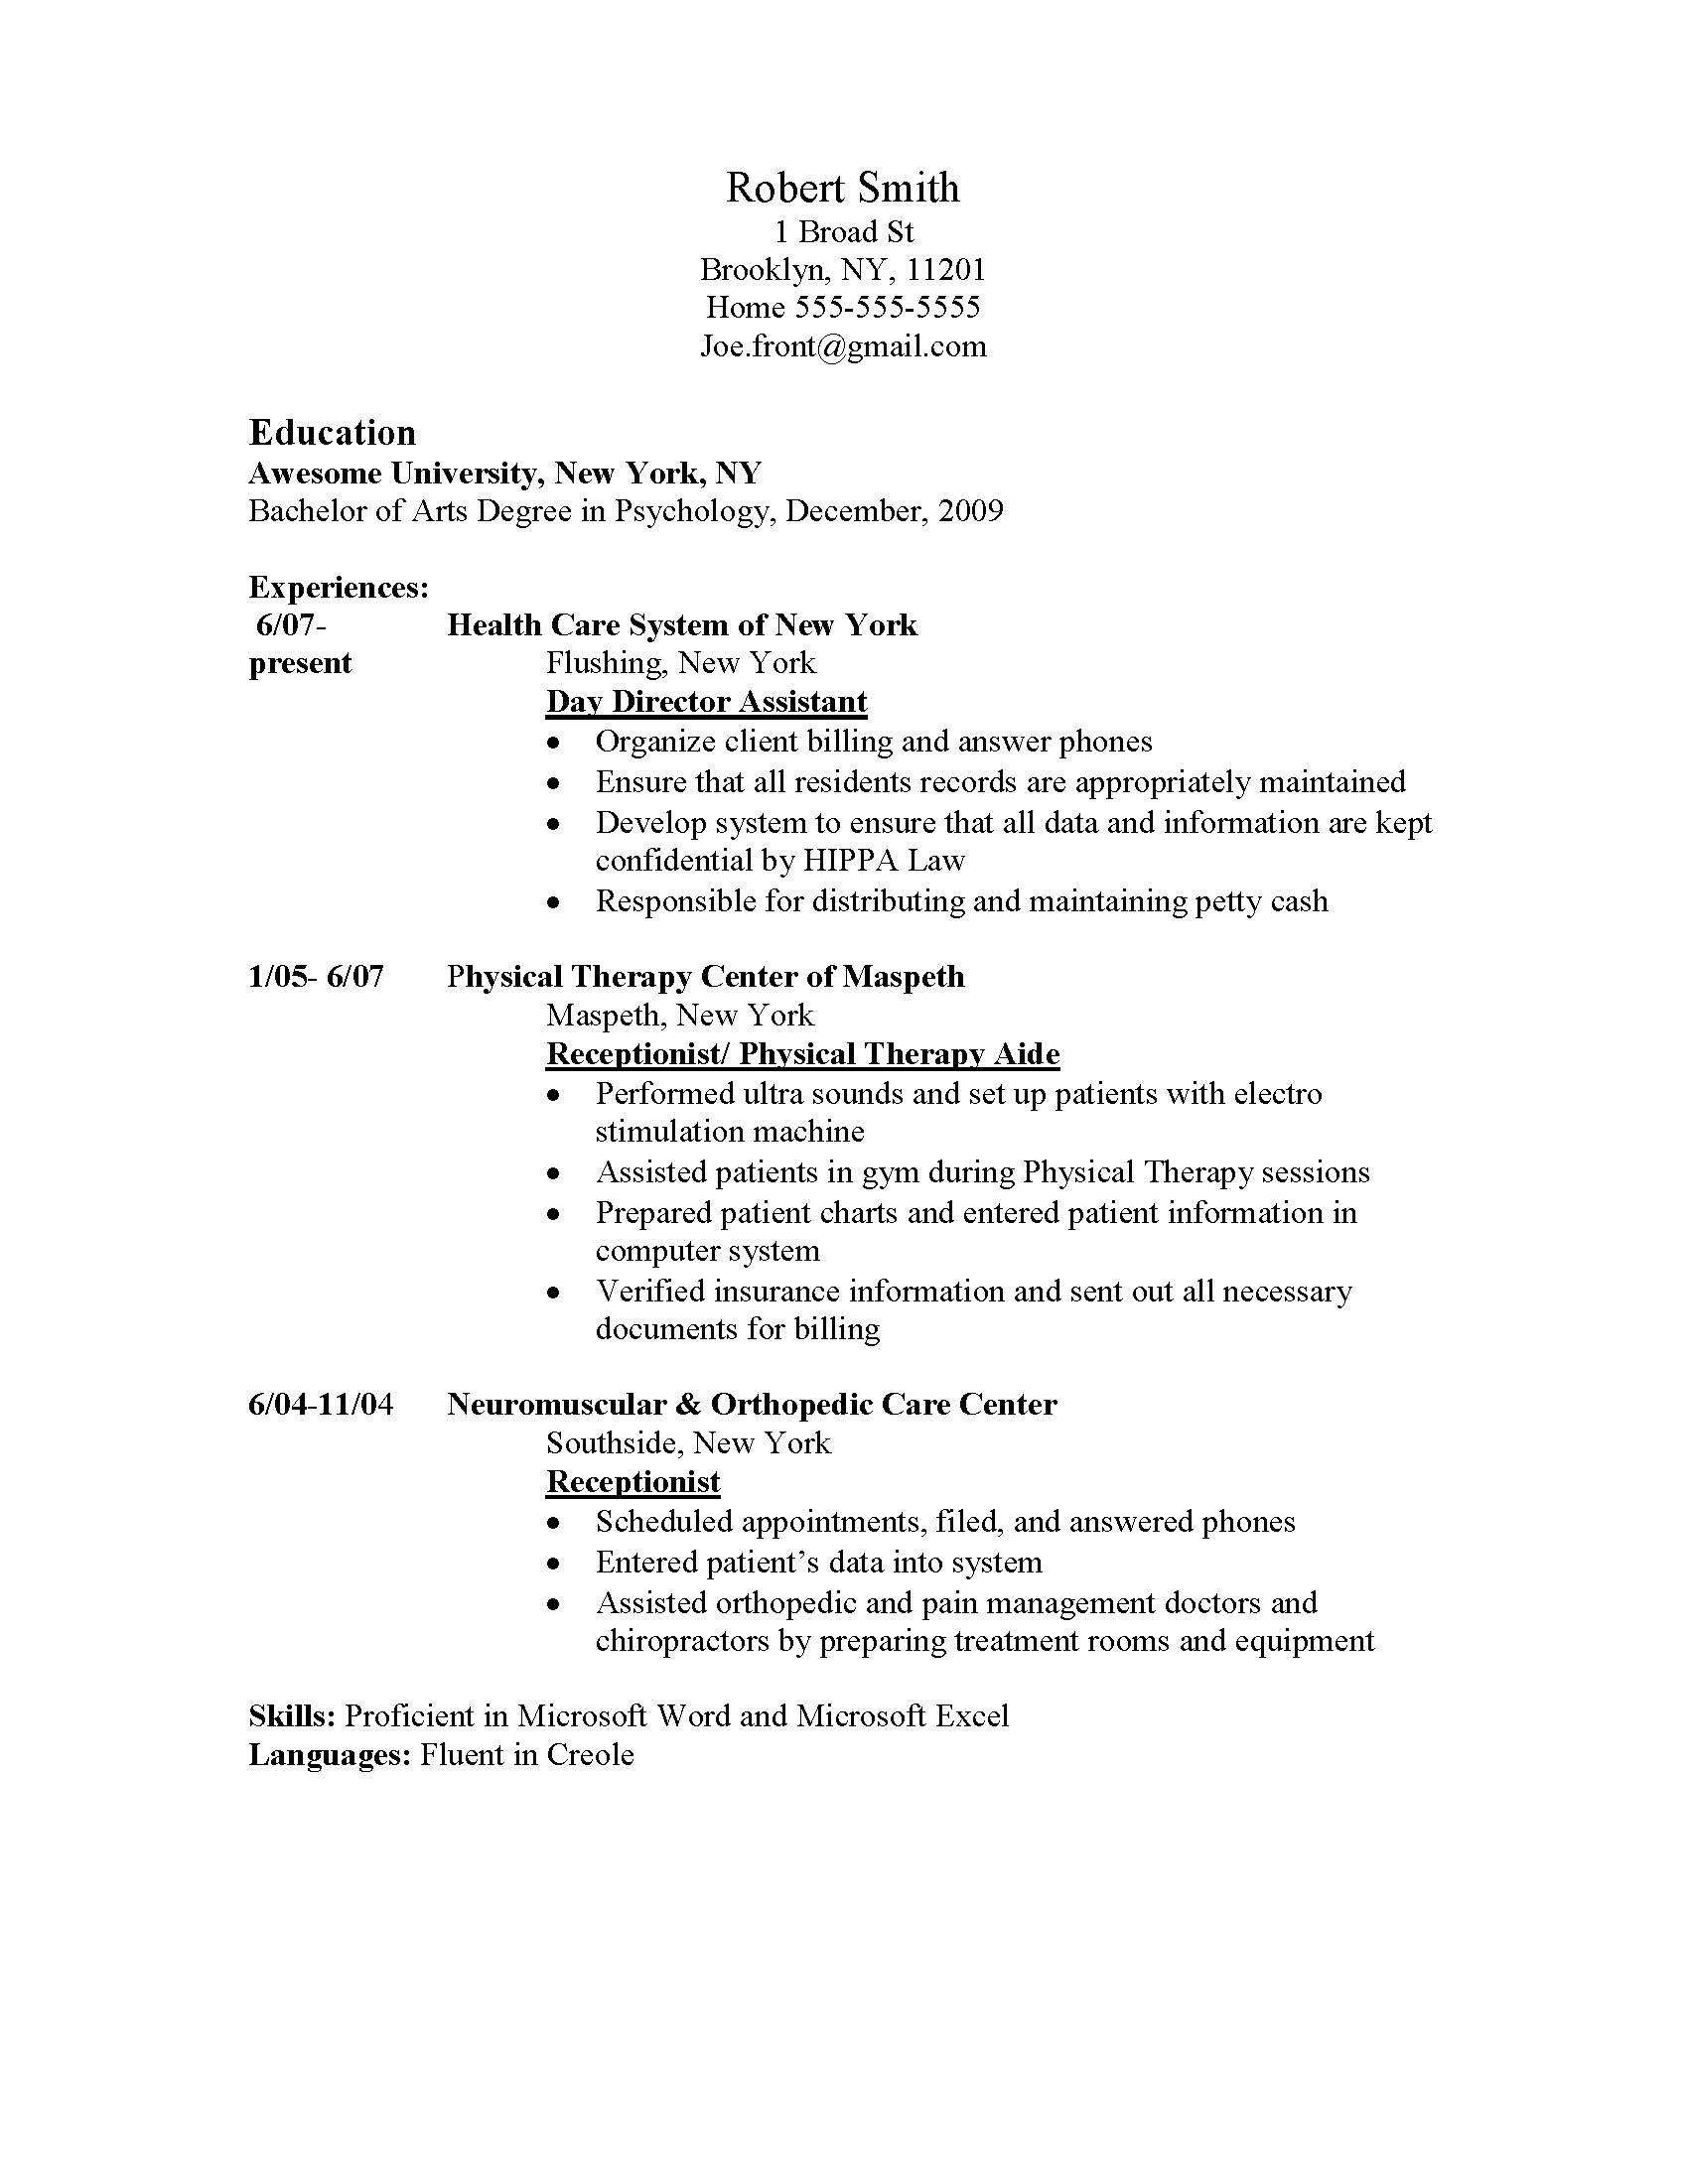 Resume Strengths Examples Key Strengths List For Resume. Planning For  Integrating Teaching .  Resume Key Phrases